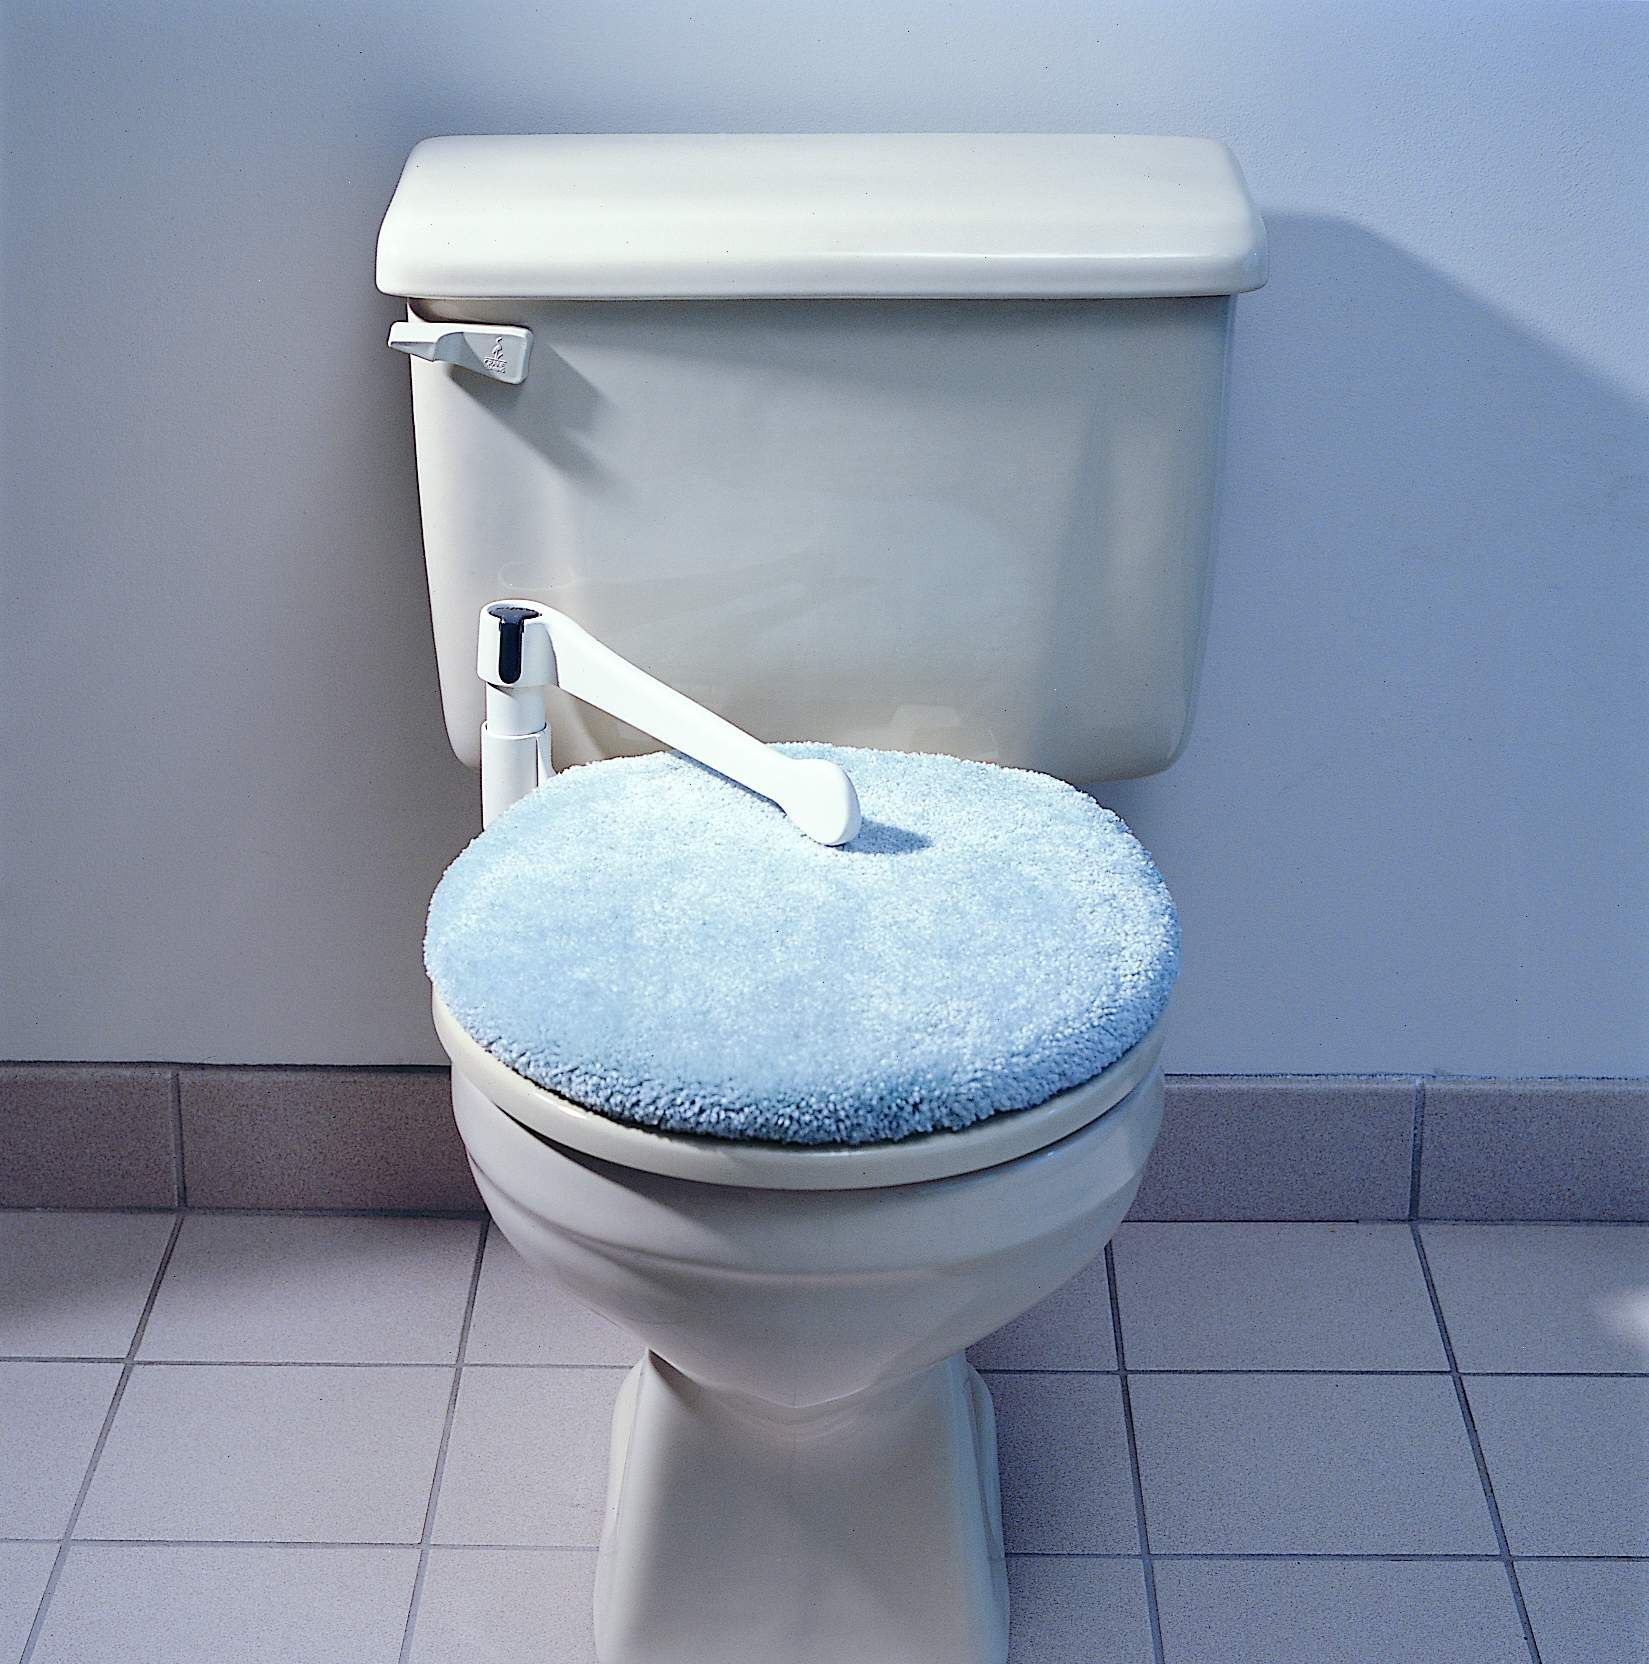 Pleasant Safety Lock For Toilet Defeat Blotting Hu Baby Safety Alphanode Cool Chair Designs And Ideas Alphanodeonline